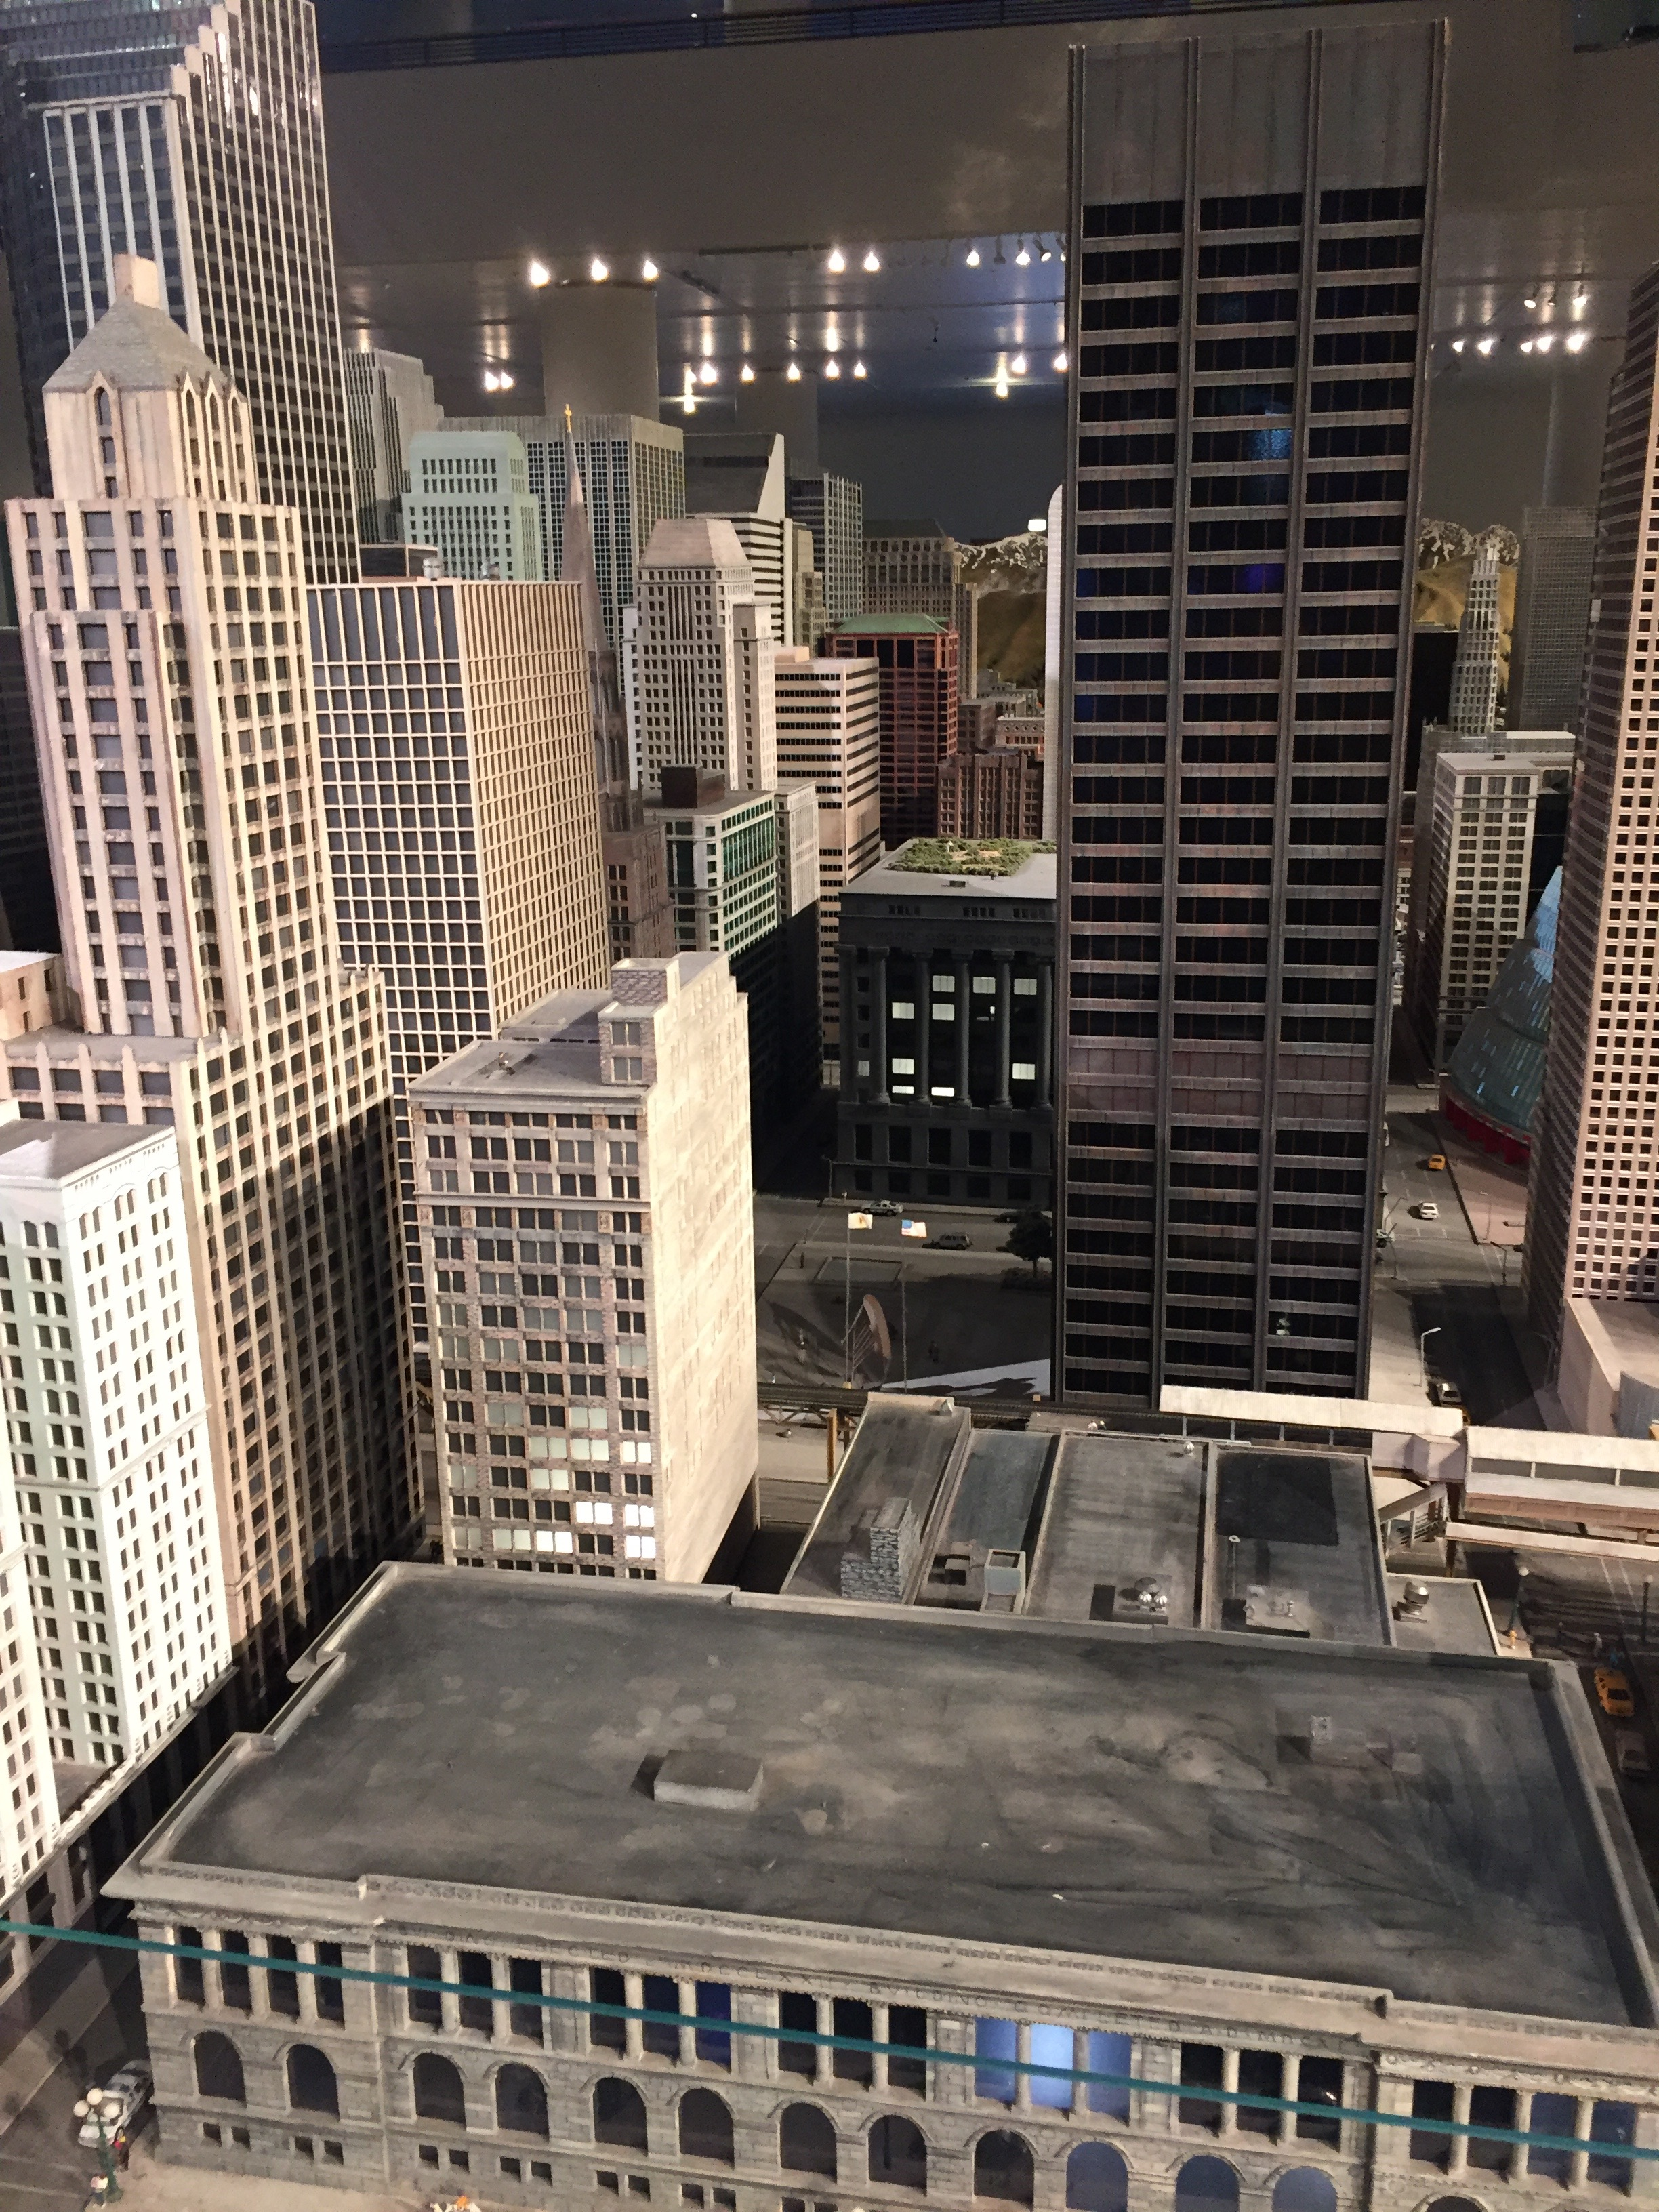 Oh gosh ... this is the small scale model of downtown Chicago at the Museum of Science & Industry. Naturally, I found the Picasso sculpture!